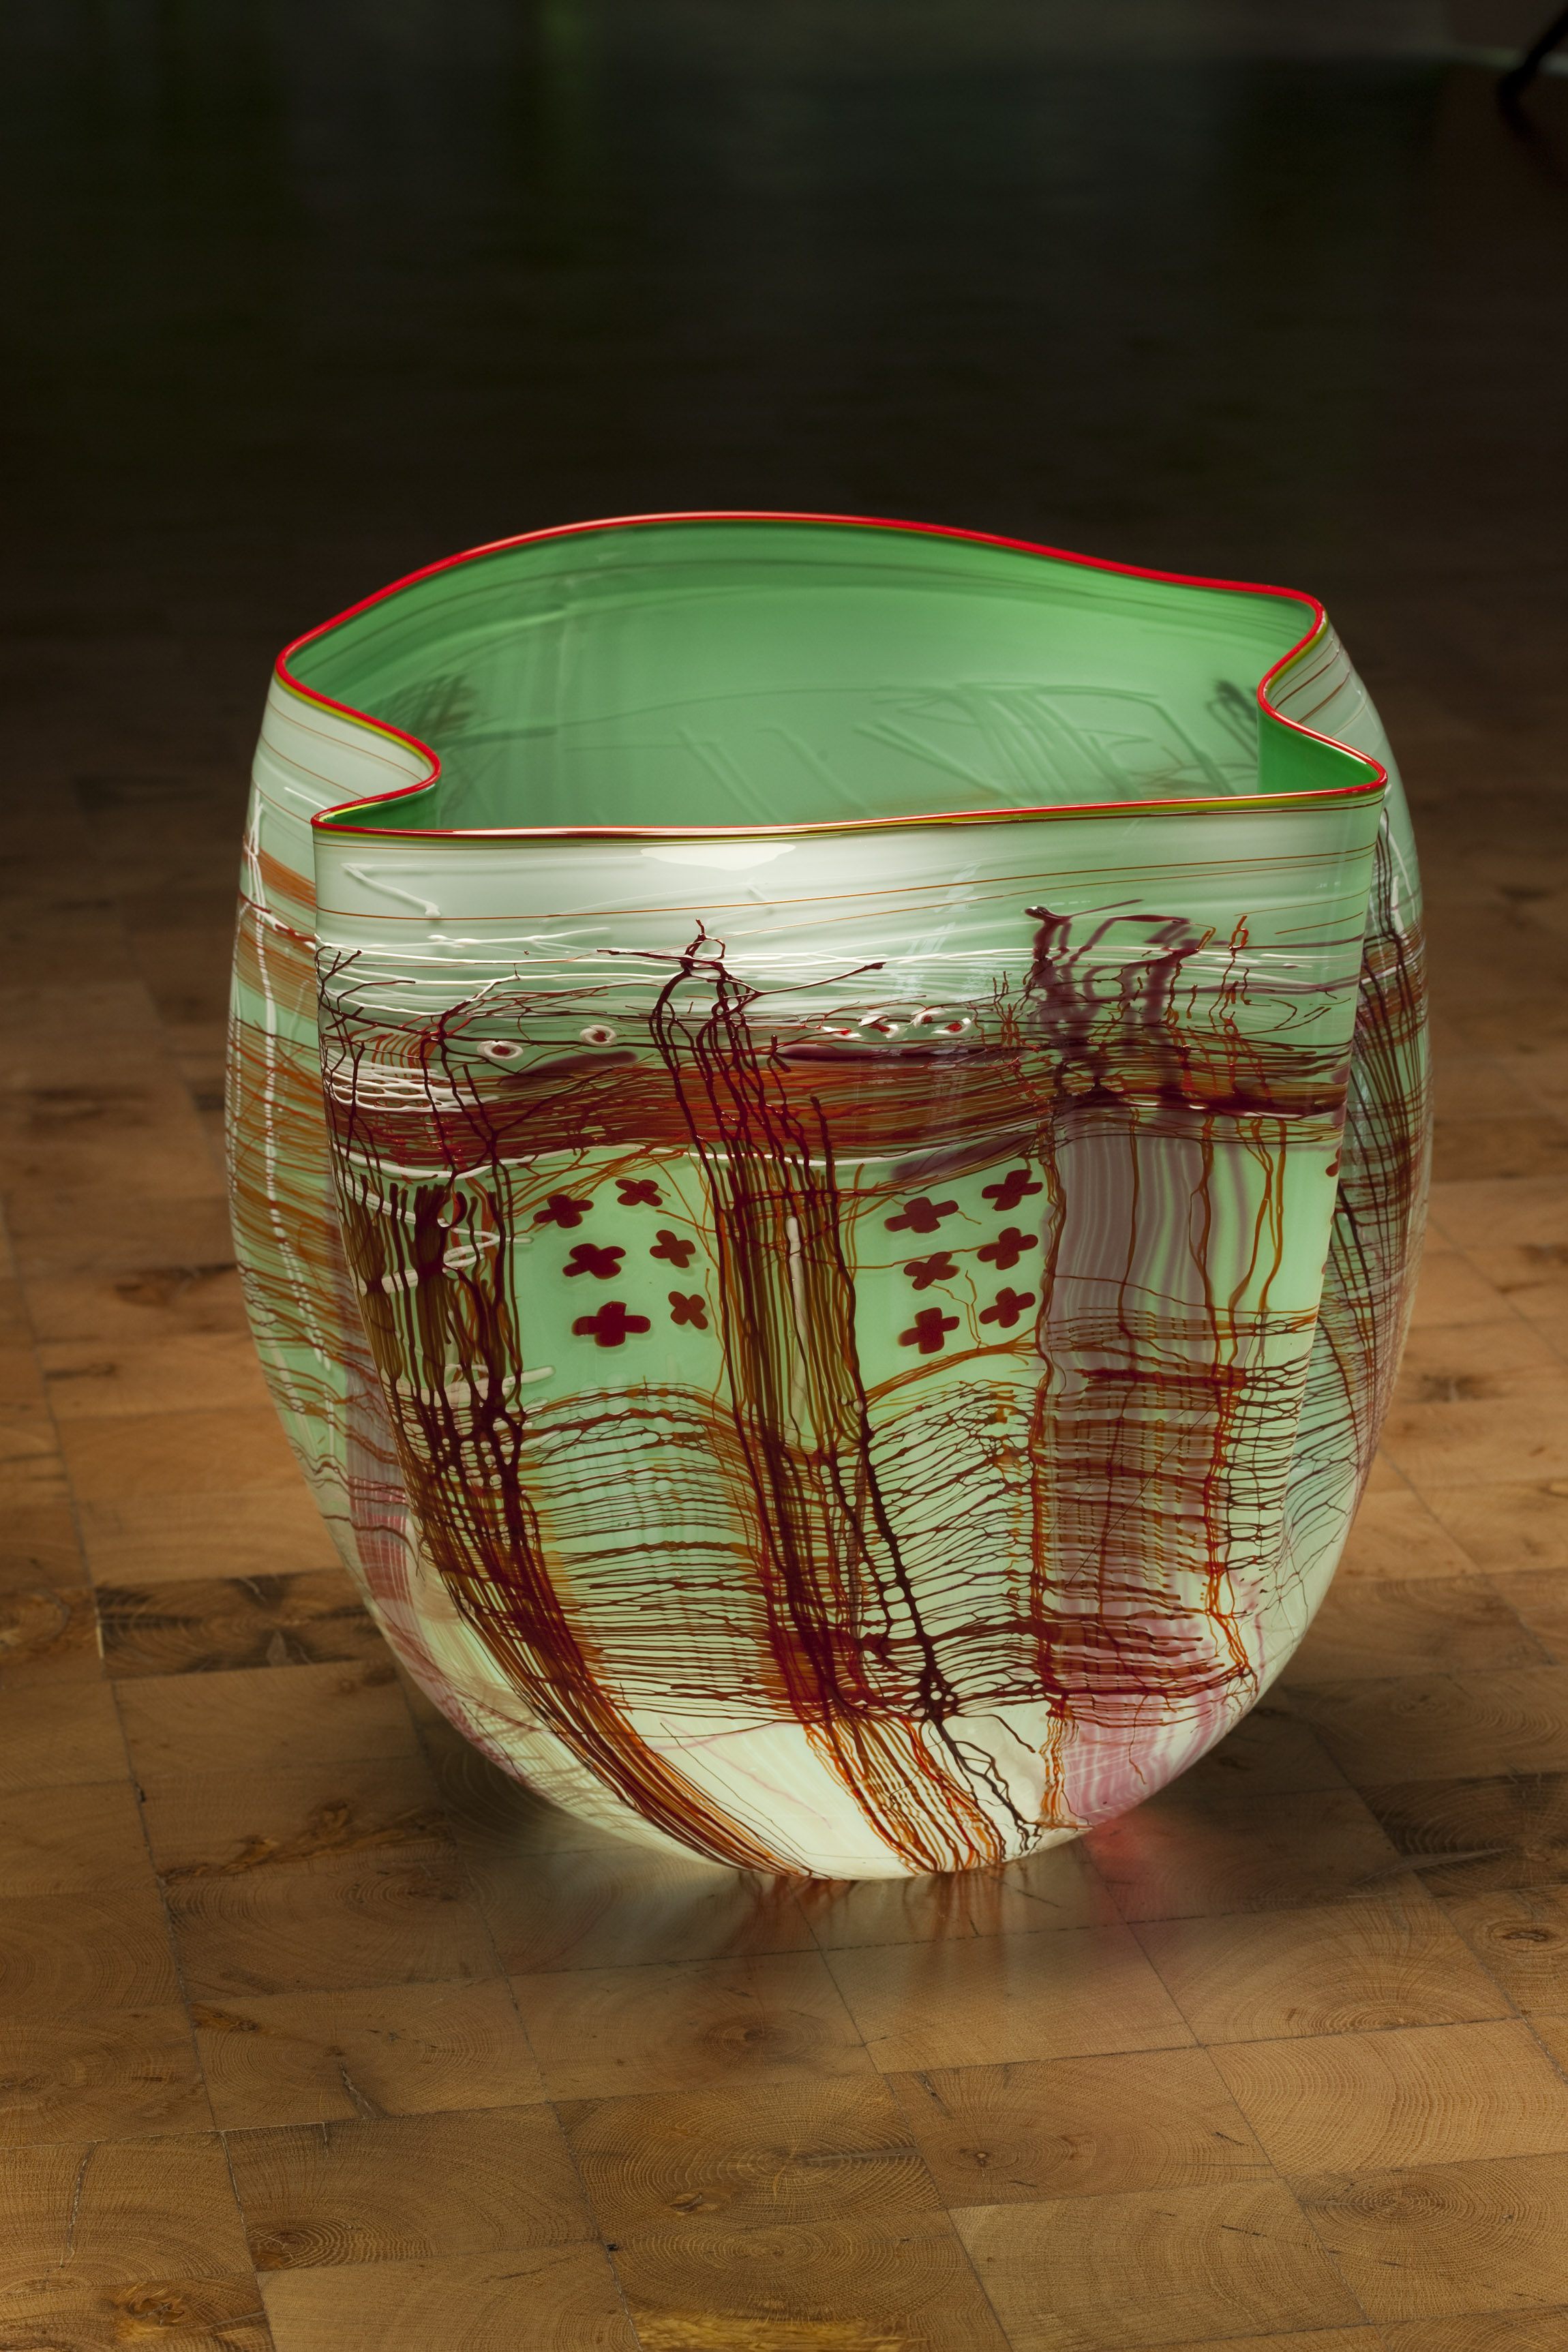 Dale Chihuly, Mint Green White Soft Cylinder with Cherry Lip Wrap, 2012, 51 x 48 x 38 cm